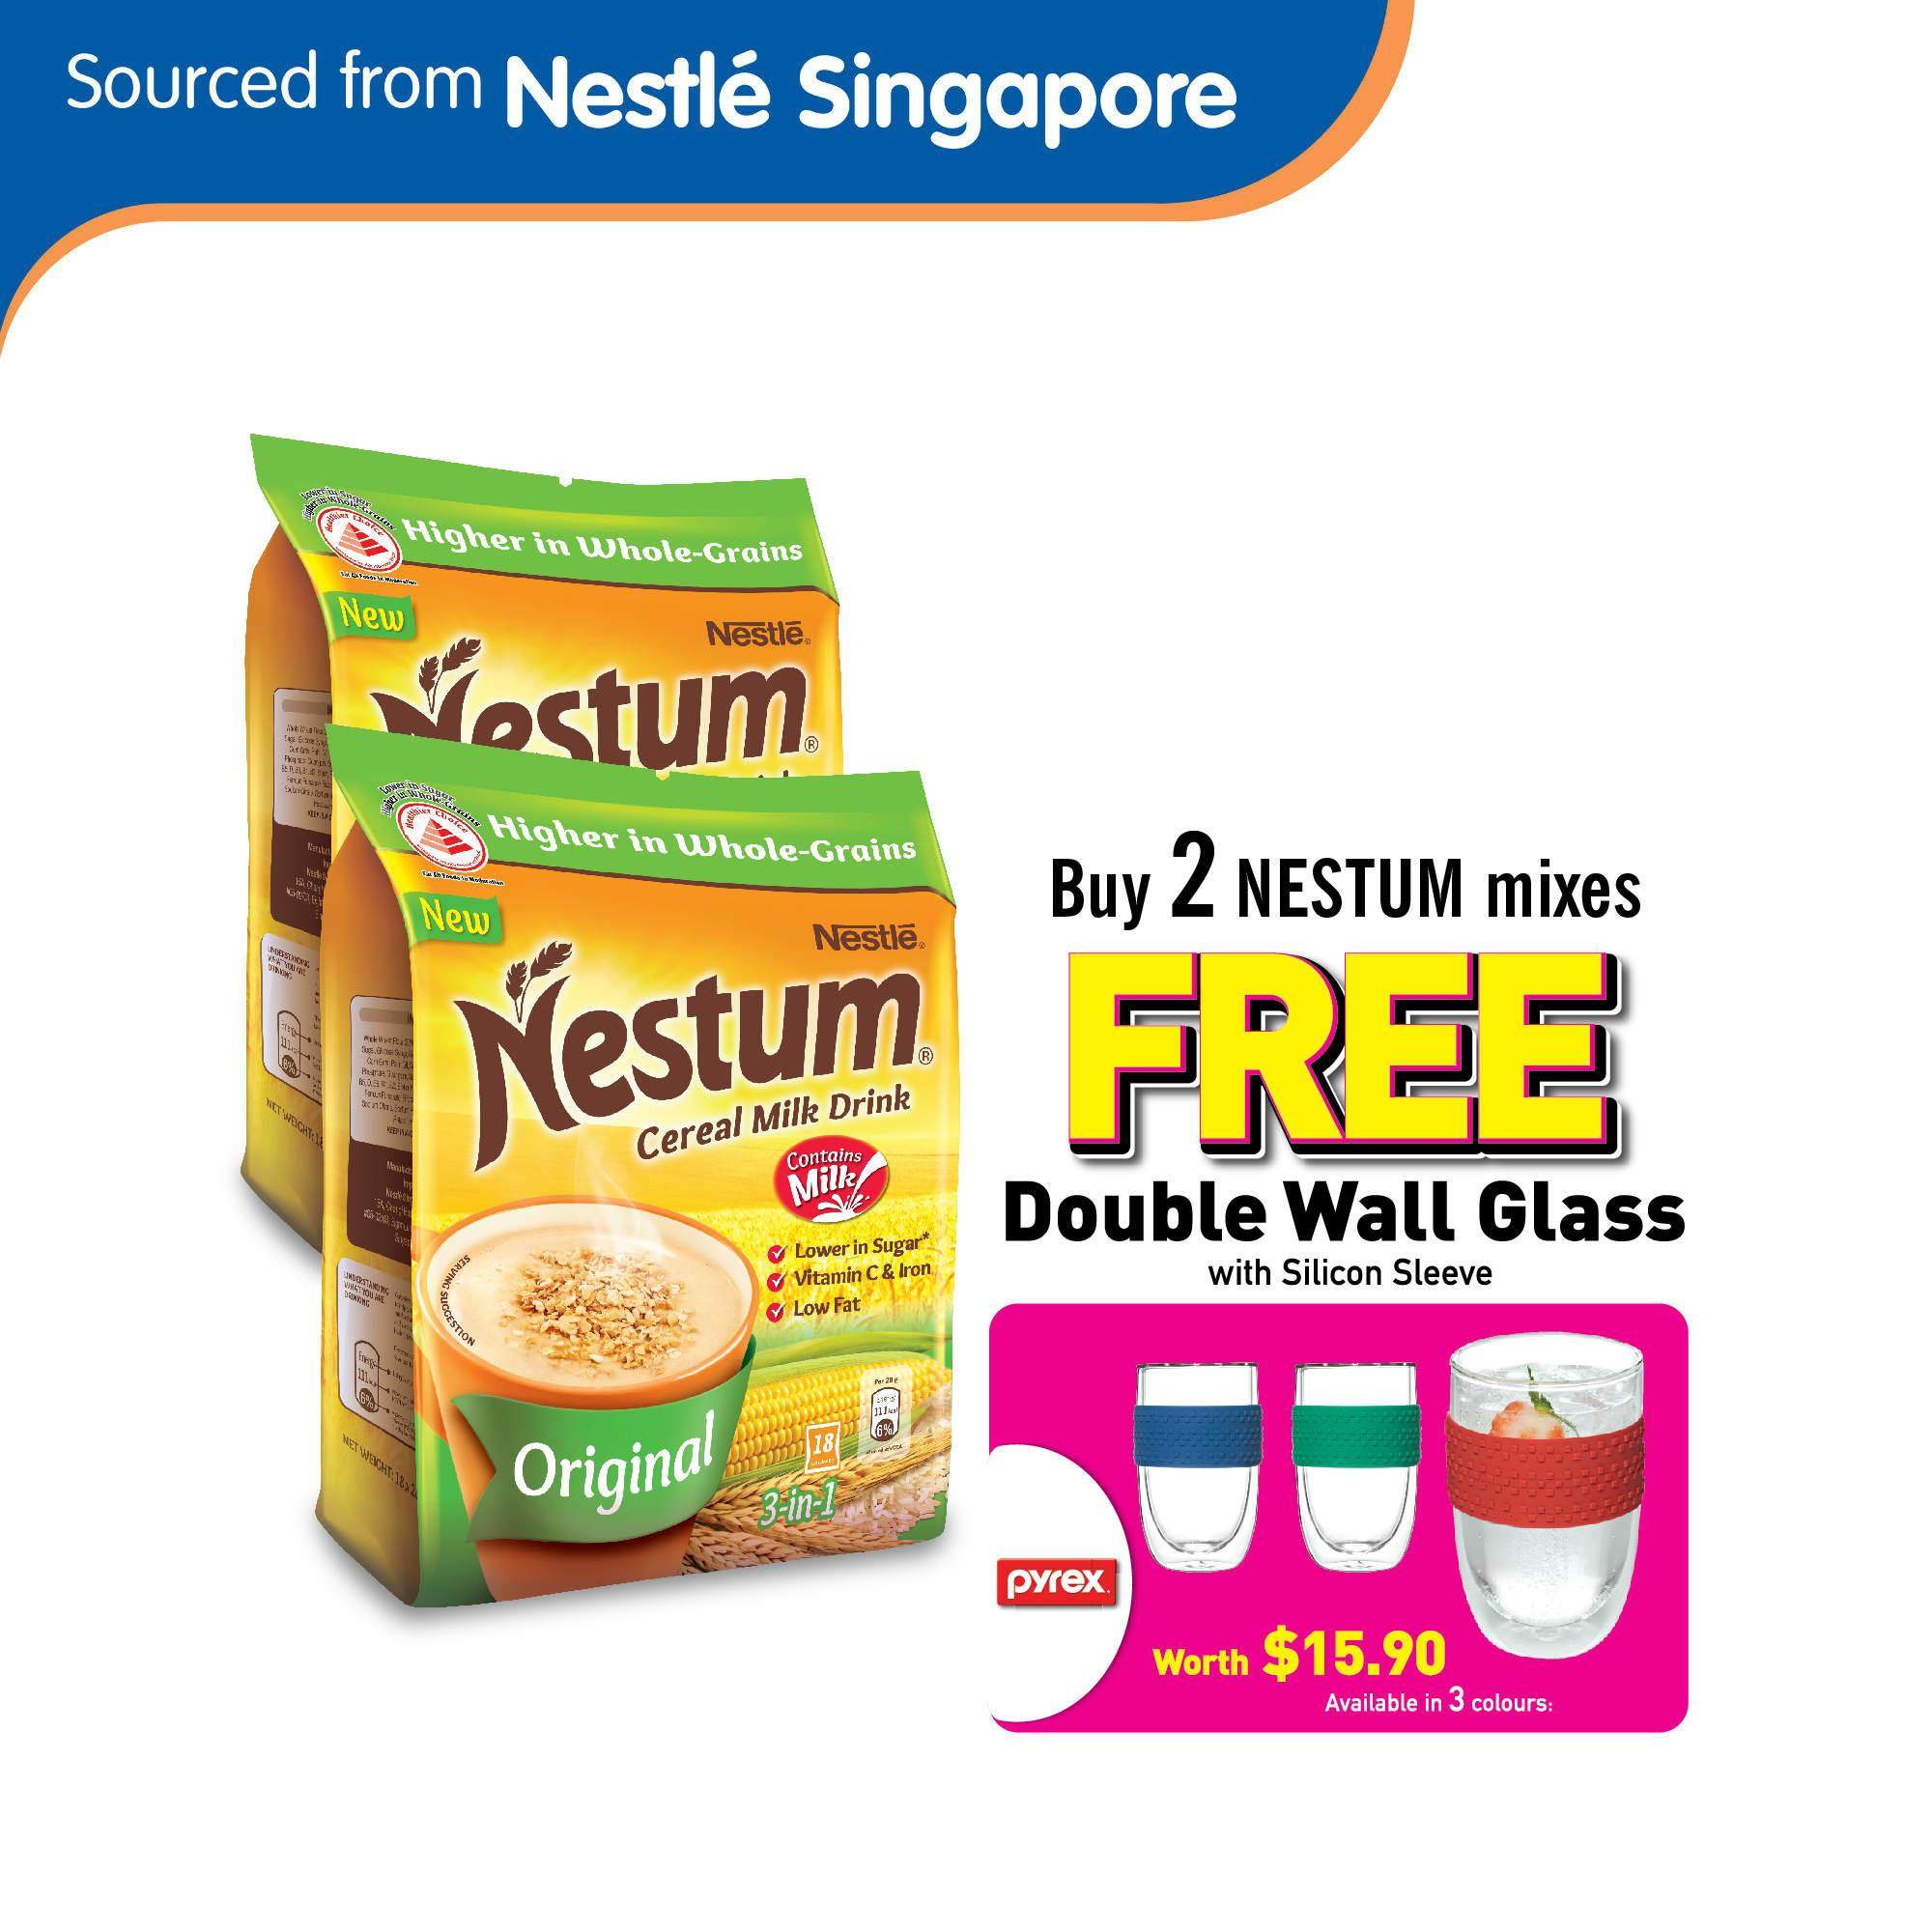 Nestum 3in1 Cereal Drink Original (2 Packs Free Pyrex Double Wall Glass) By Nestle Official Store.